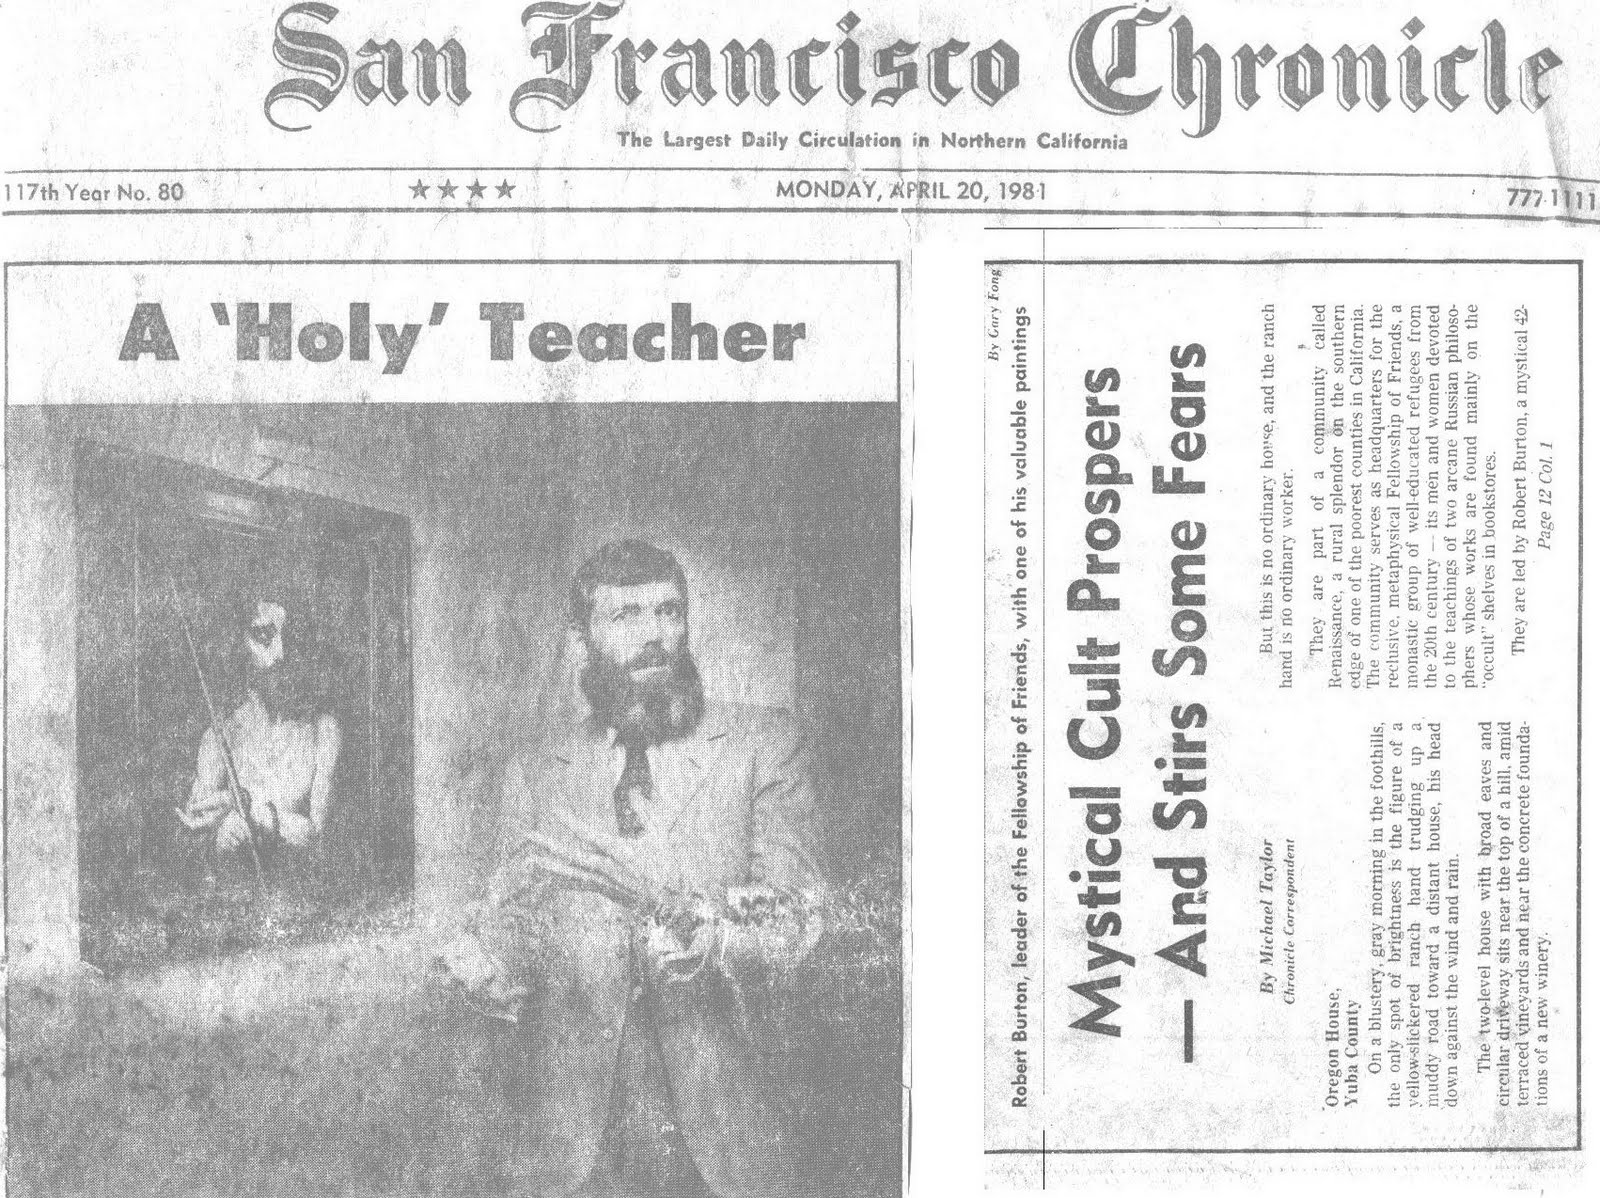 Robert Earl Burton, leader of Fellowship of Friends in Oregon House, CA, San Francisco Chronicle story